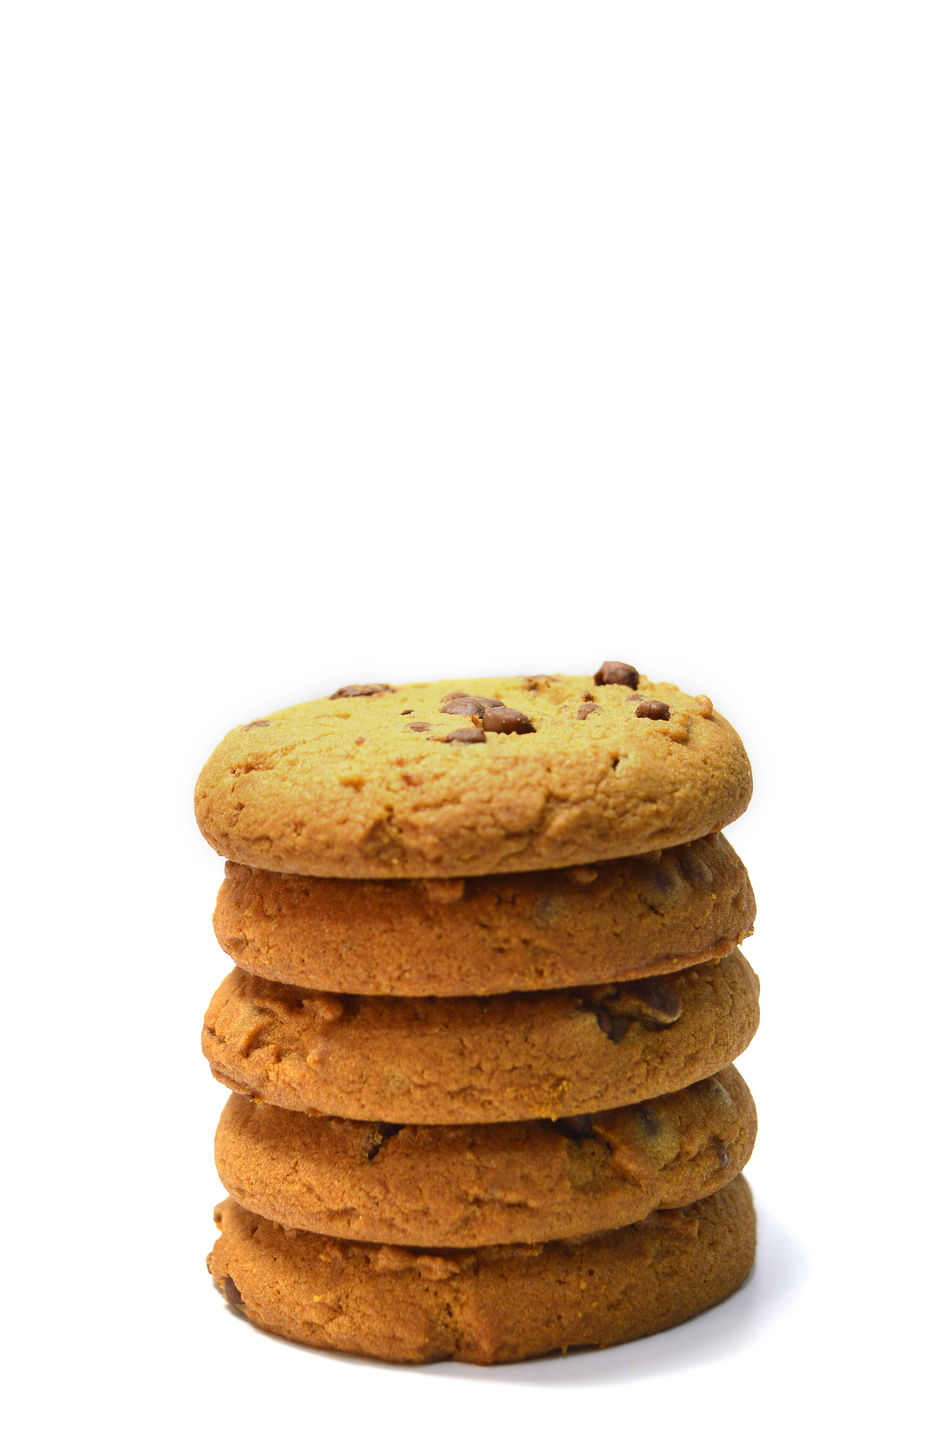 Chocolate chips cookies isolated on white Bake Baked Biscuit Breakfast Brown Calories Close-up Cookies Delicious Dessert Food Food And Drink Fresh Freshness Handmade No People Ready-to-eat Snack Stack Studio Shot Sweet Food Temptation Variation White Background